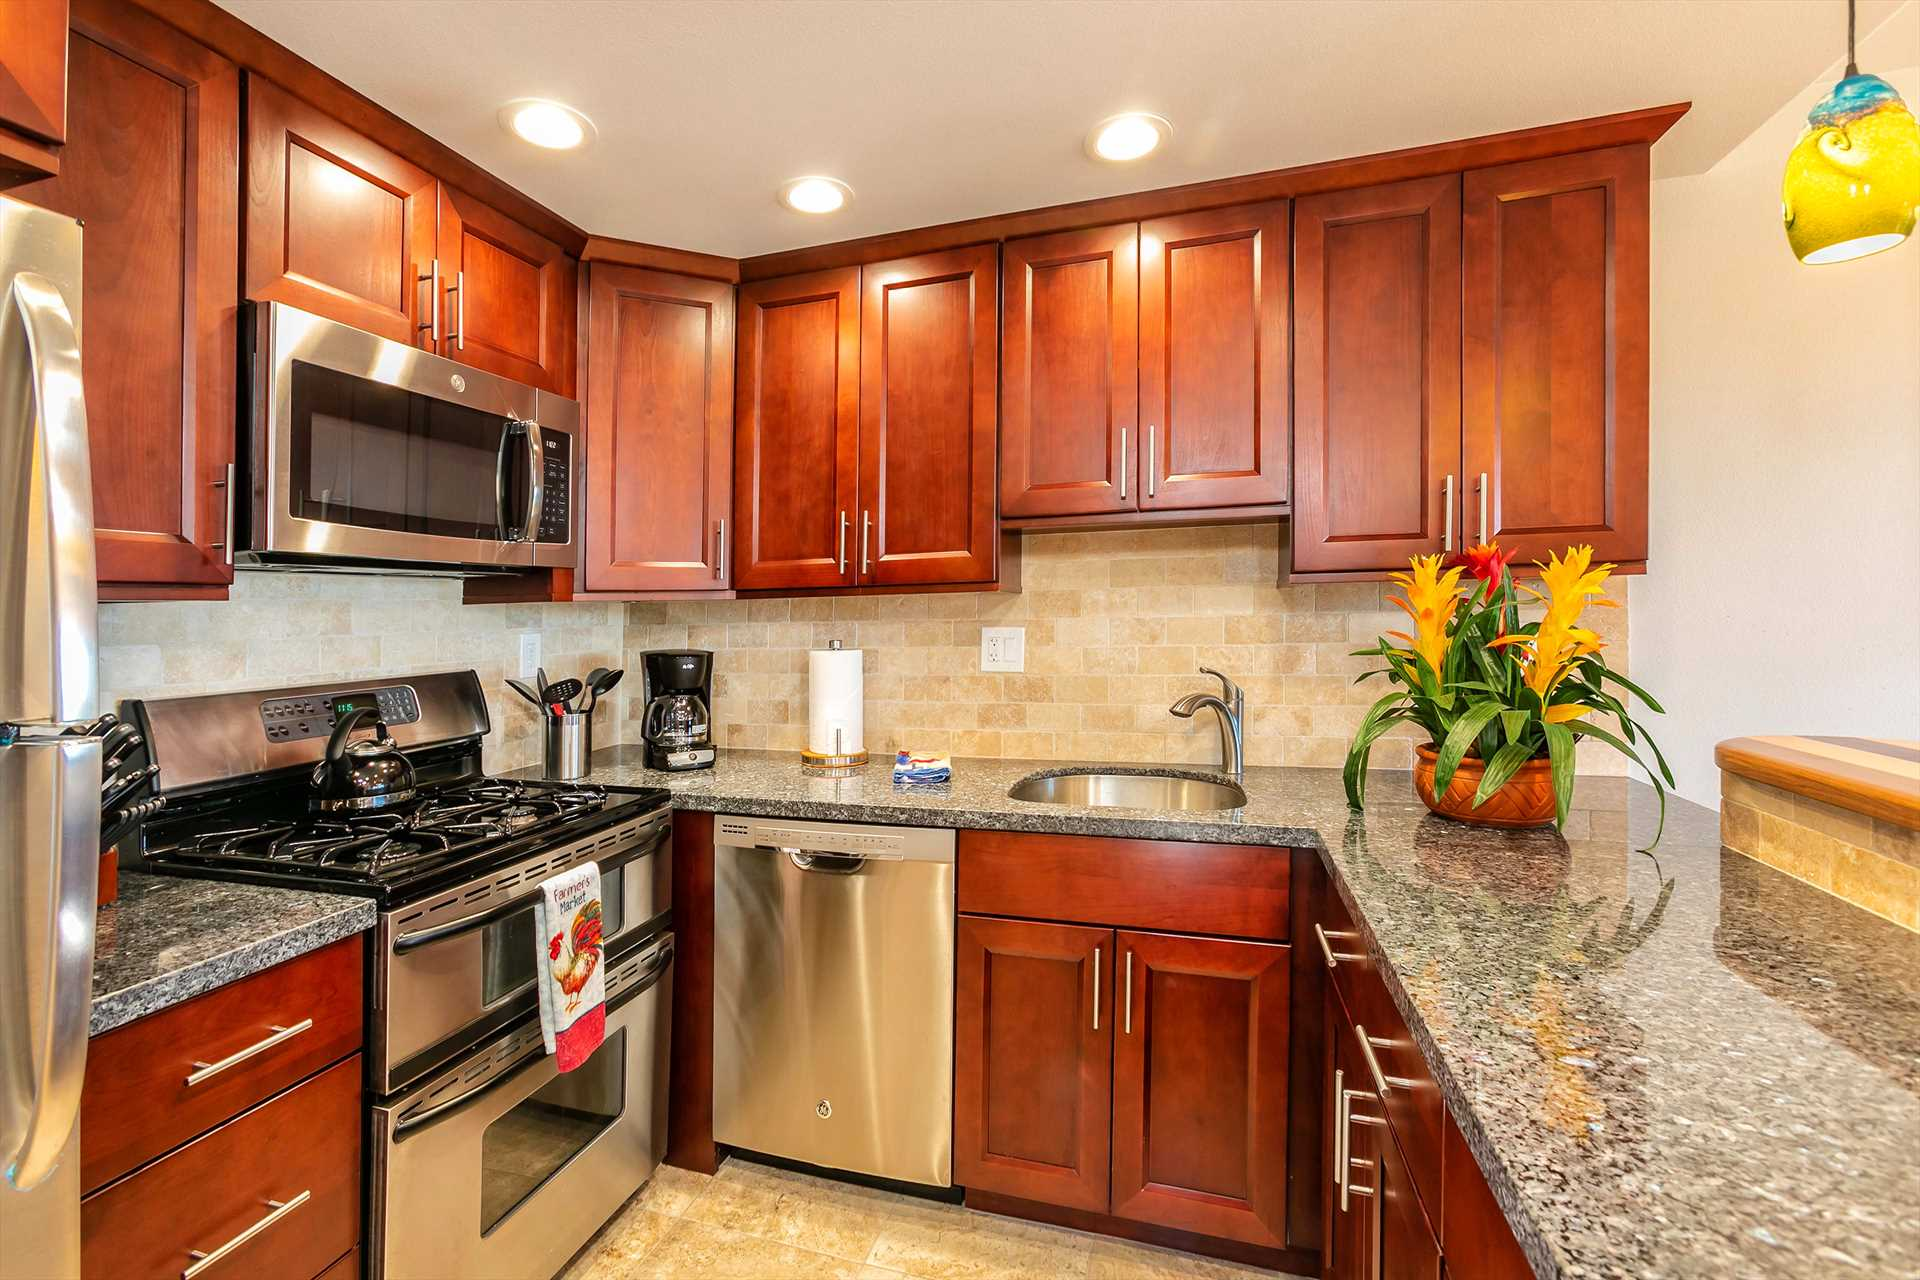 Beautiful, well-appointed kitchen perfect for at home meals.